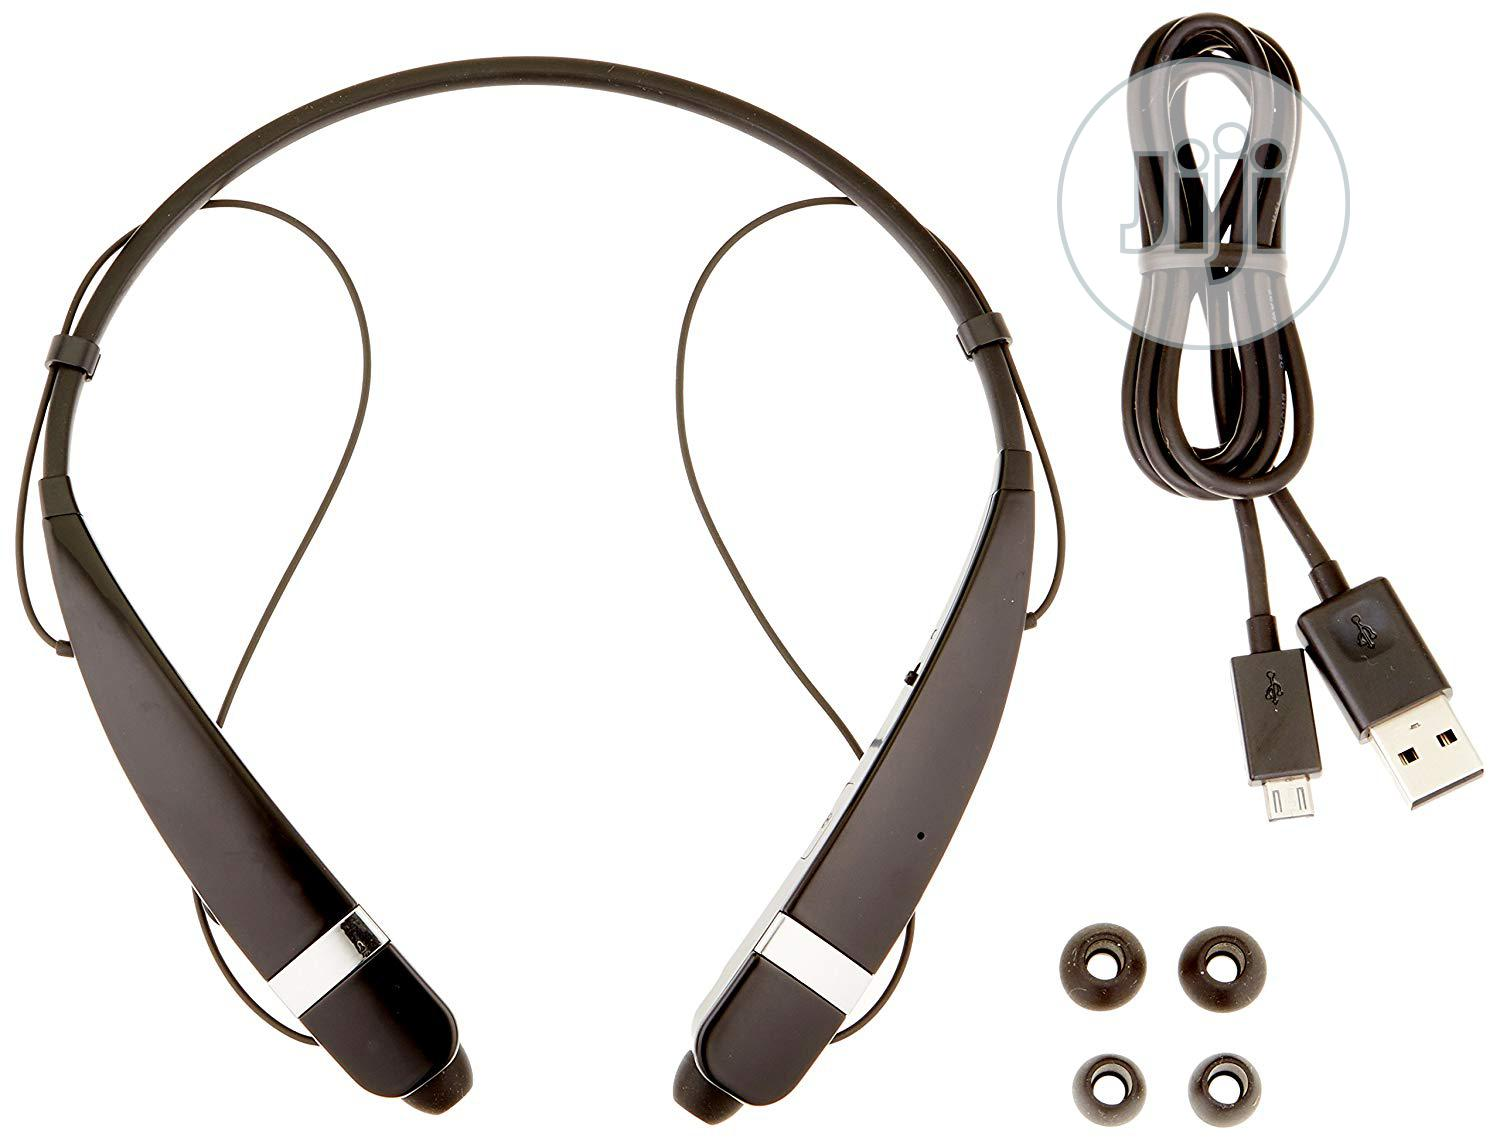 LG Tone Pro Bluetooth Wireless Stereo Headset - HBS-760